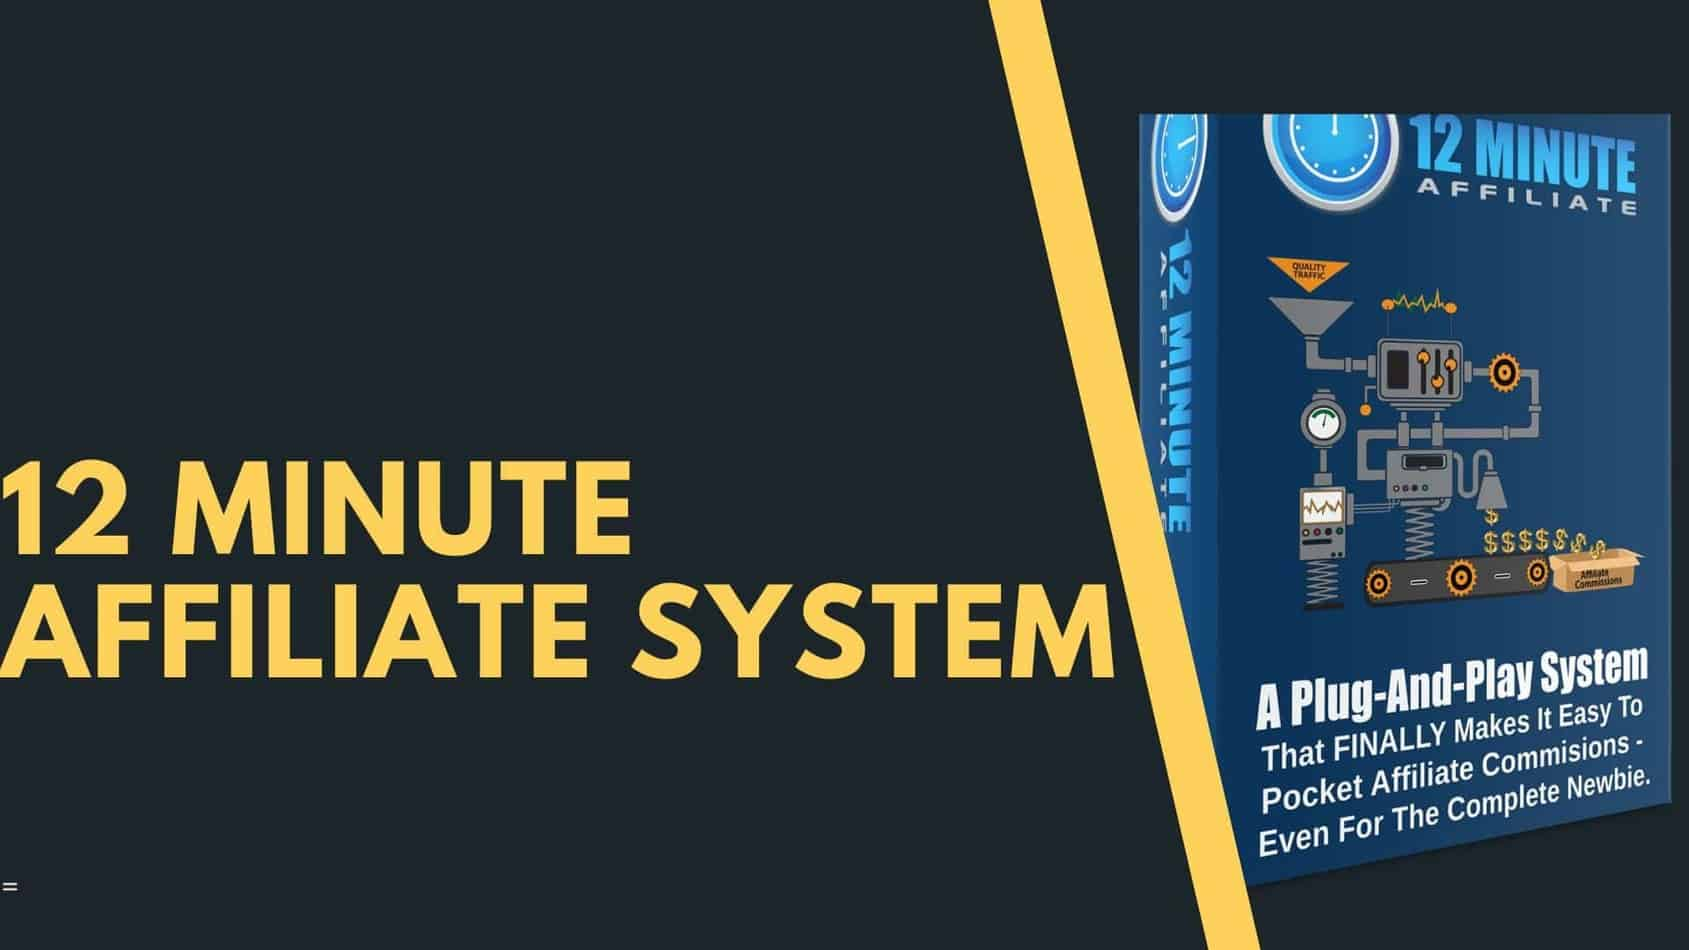 12 Minute Affiliate System  Deals Compare May 2020